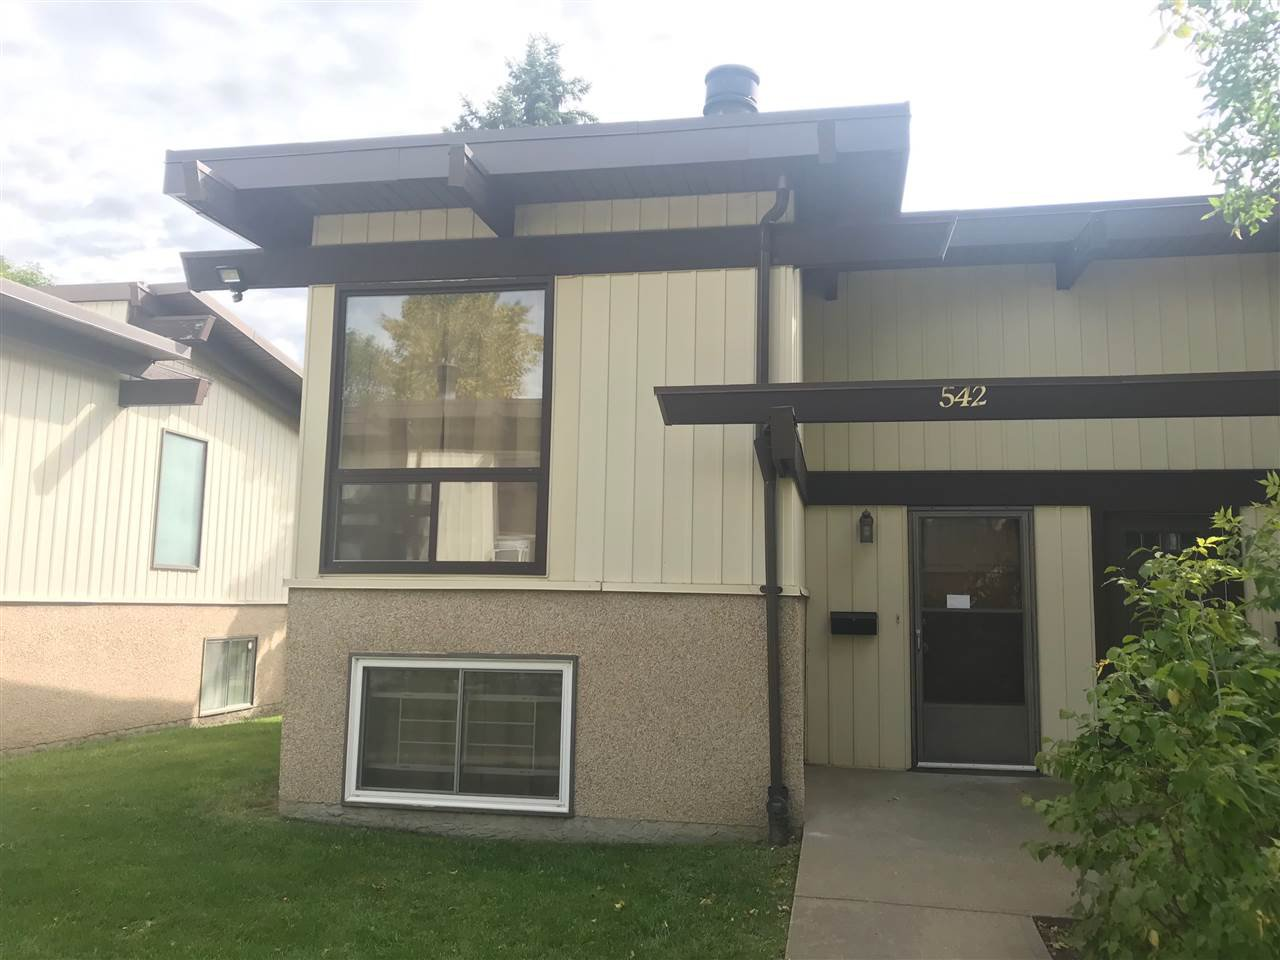 Main Photo: 542 LEE_RIDGE Road in Edmonton: Zone 29 House Half Duplex for sale : MLS®# E4172757